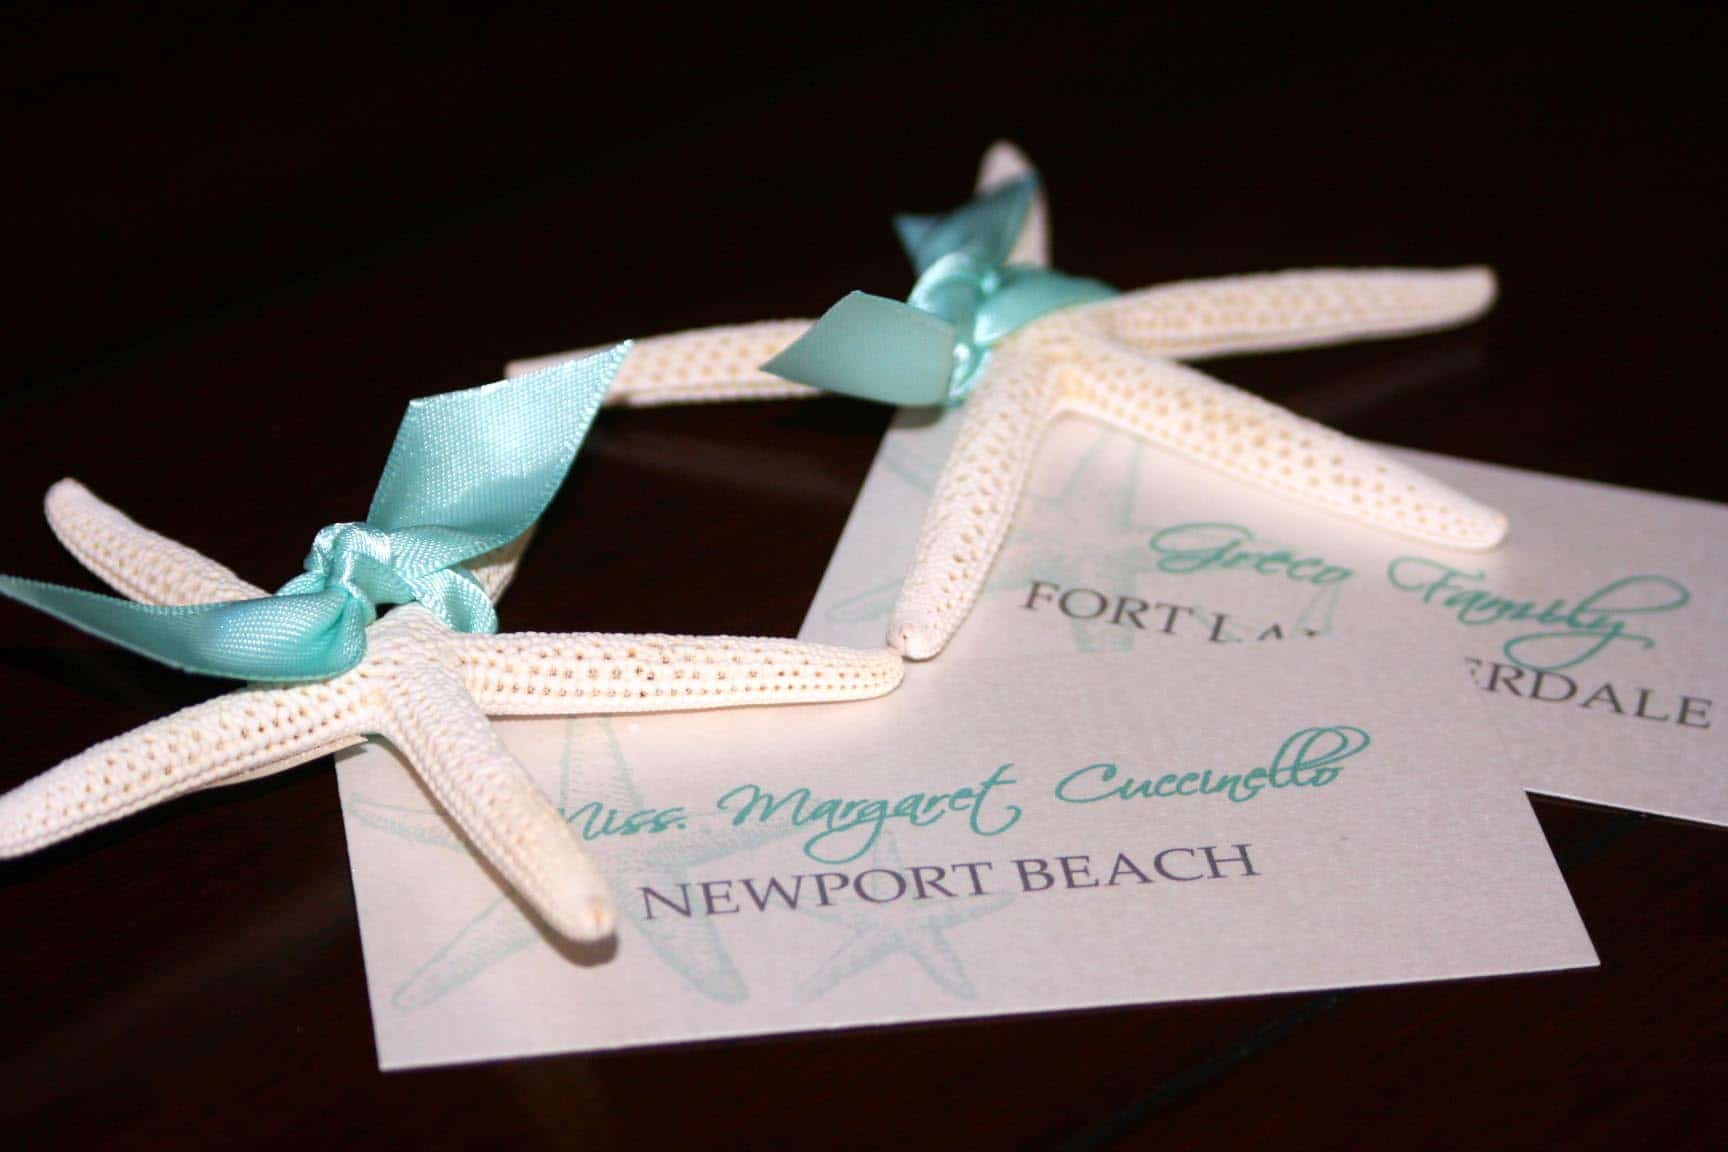 Chic Place starfish wedding place cards - too chic & little shab design studio